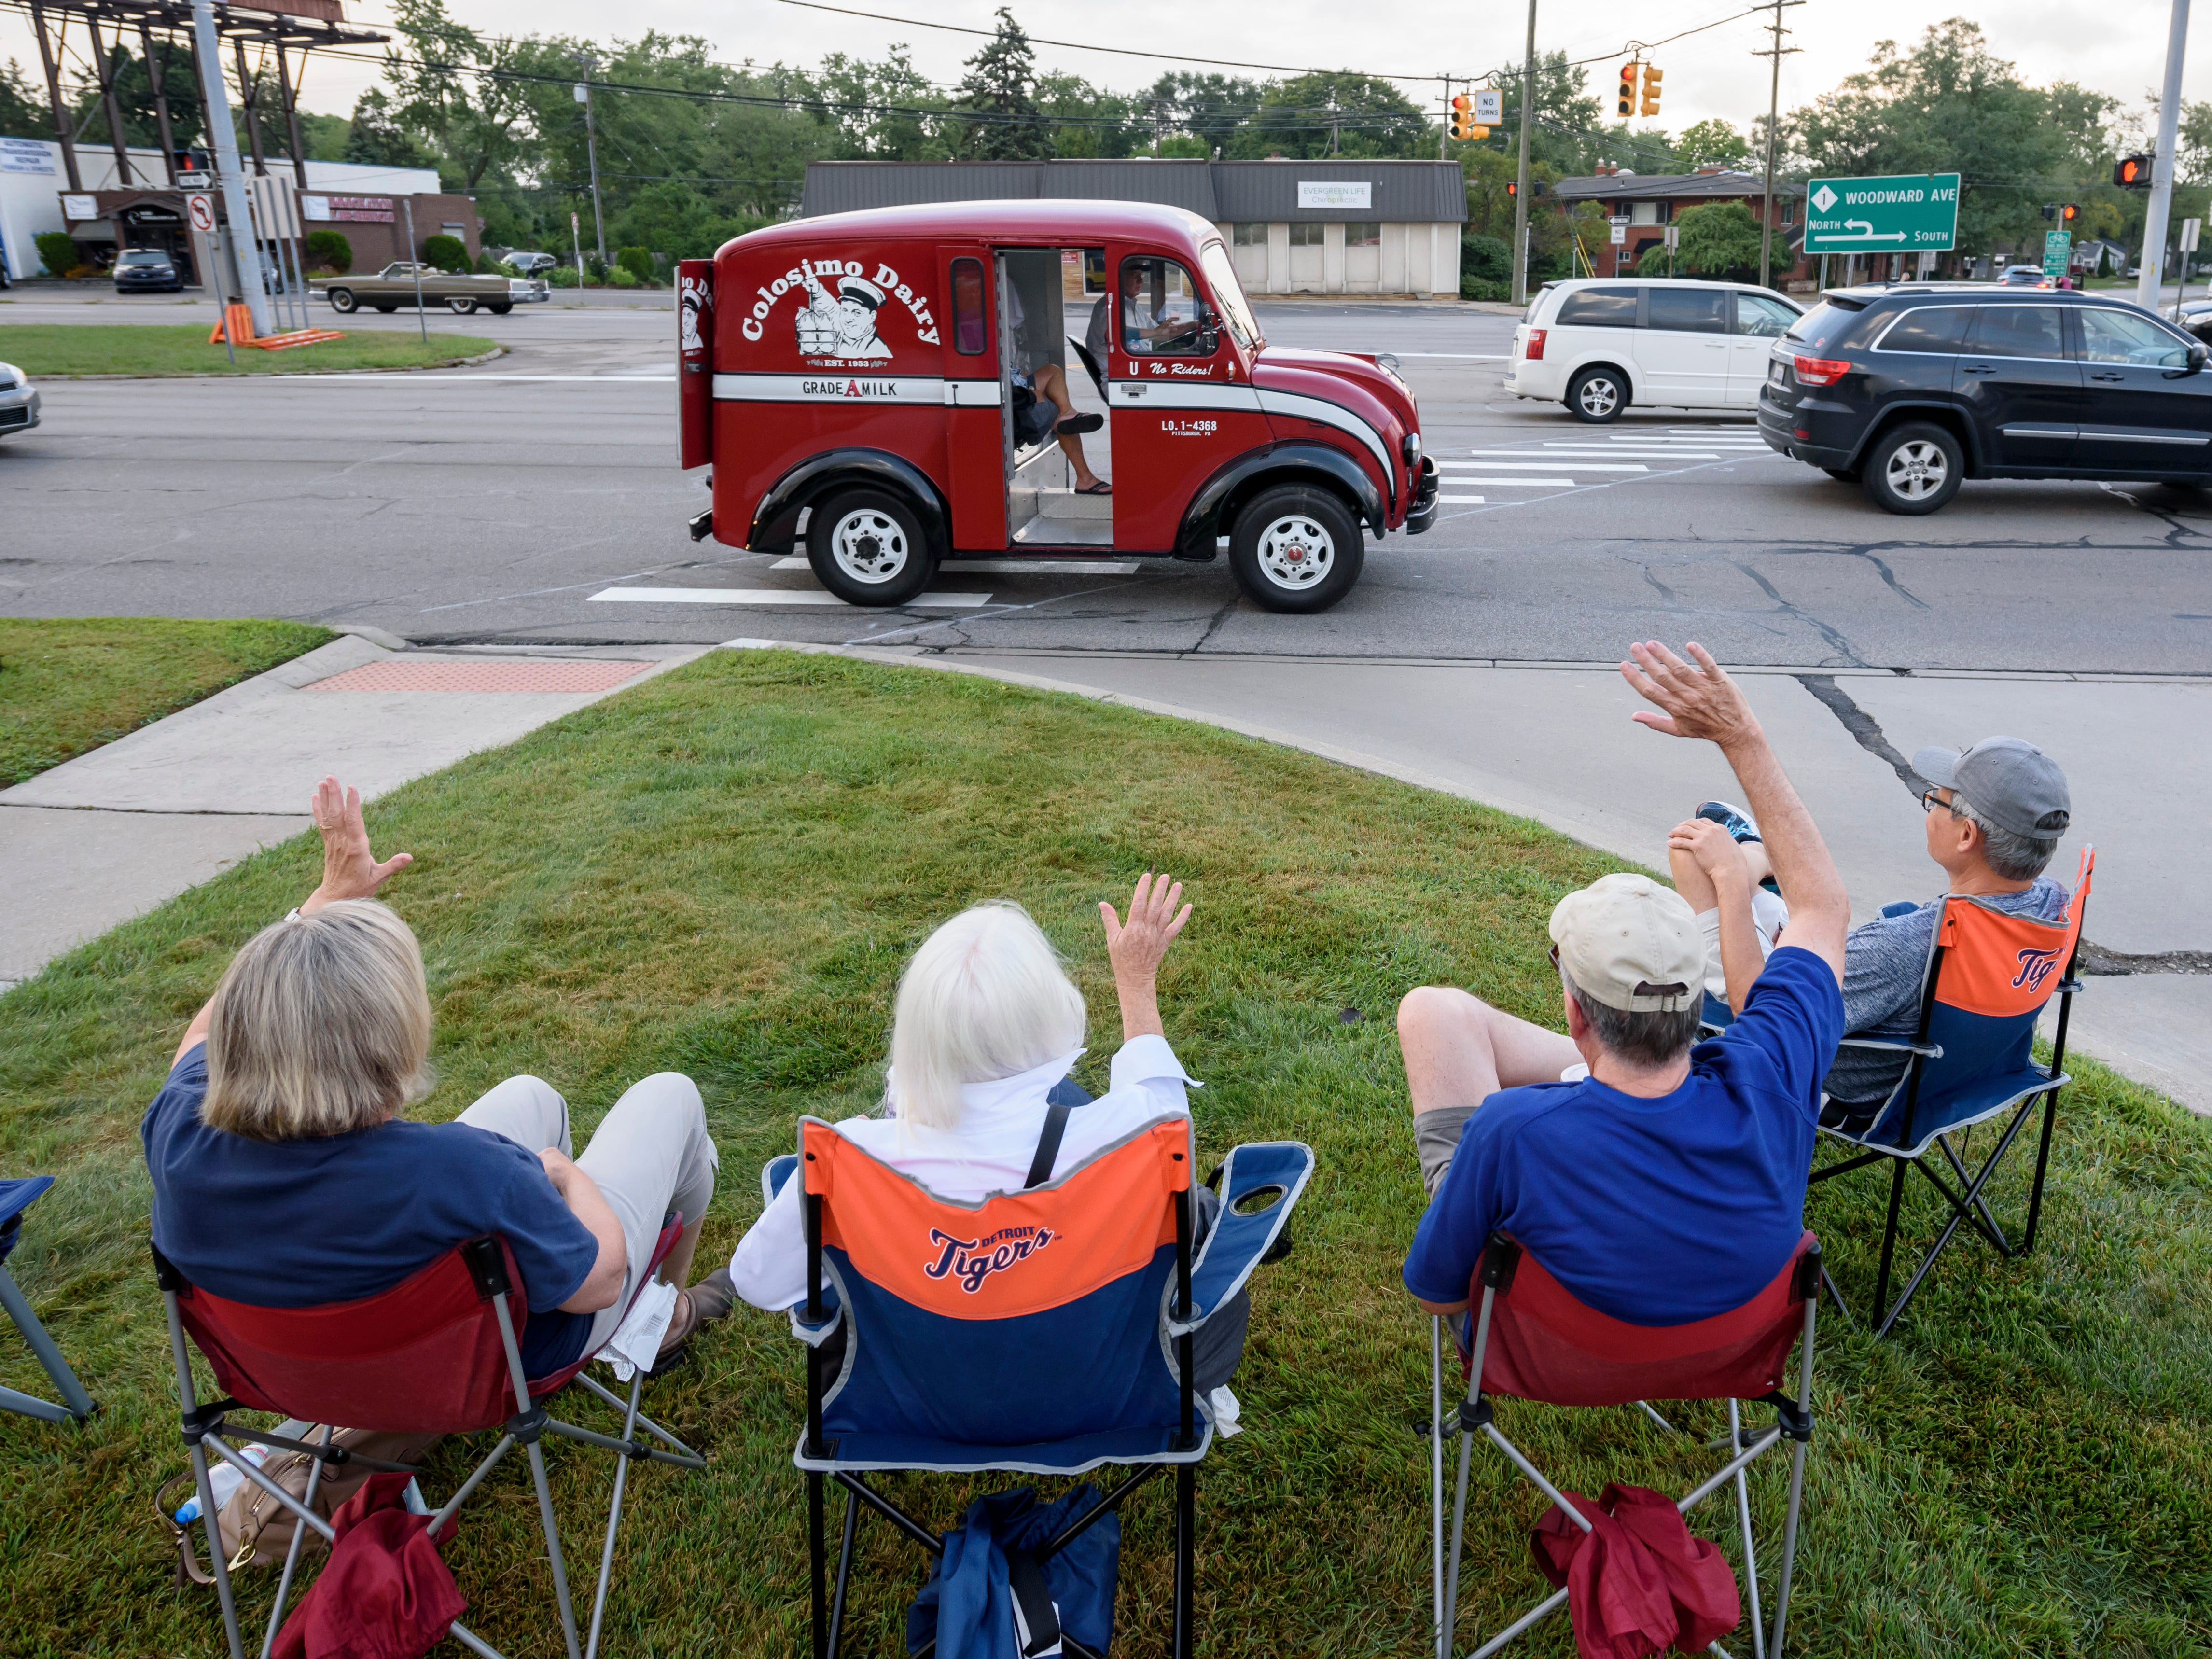 Spectators wave to a 1957 DIVCO milk truck owned by Gary Colosimo of Pittsburgh on Woodward near Normandy in Royal Oak on Aug. 16, 2018.